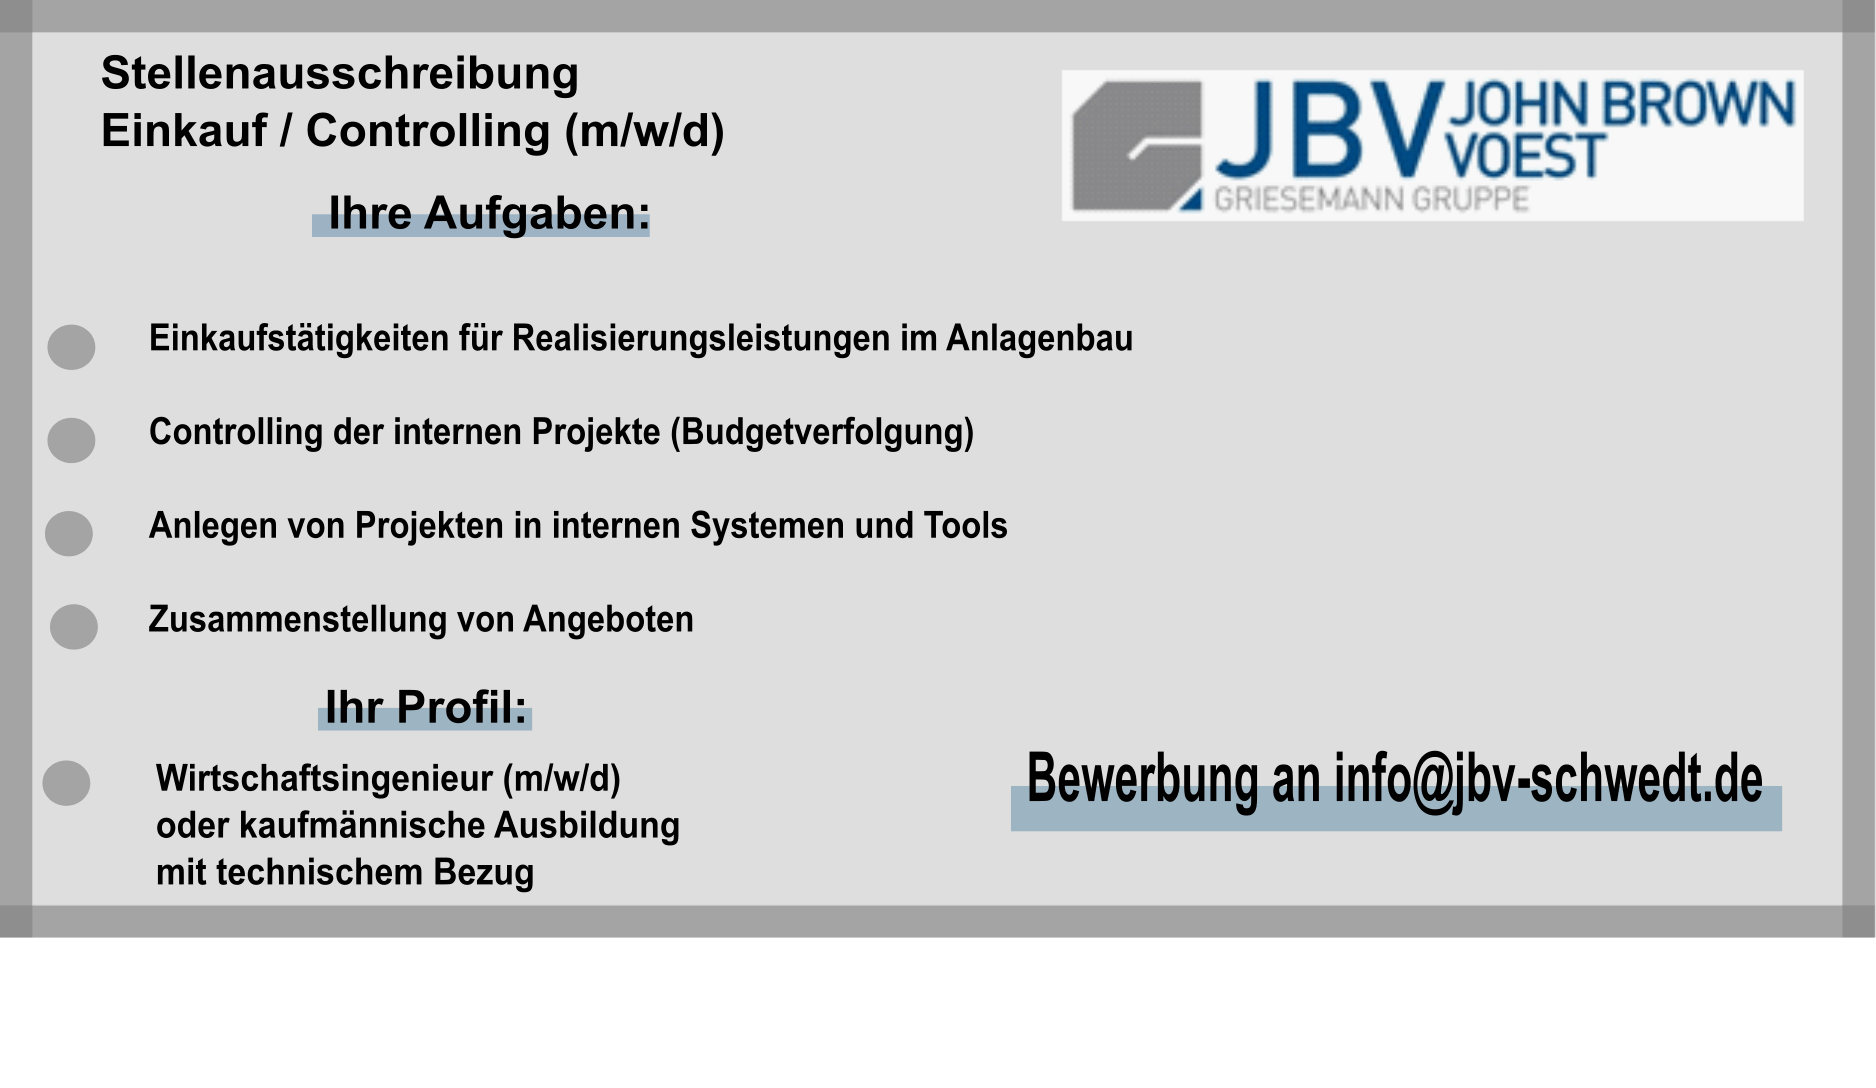 John Brown Voest GmbH